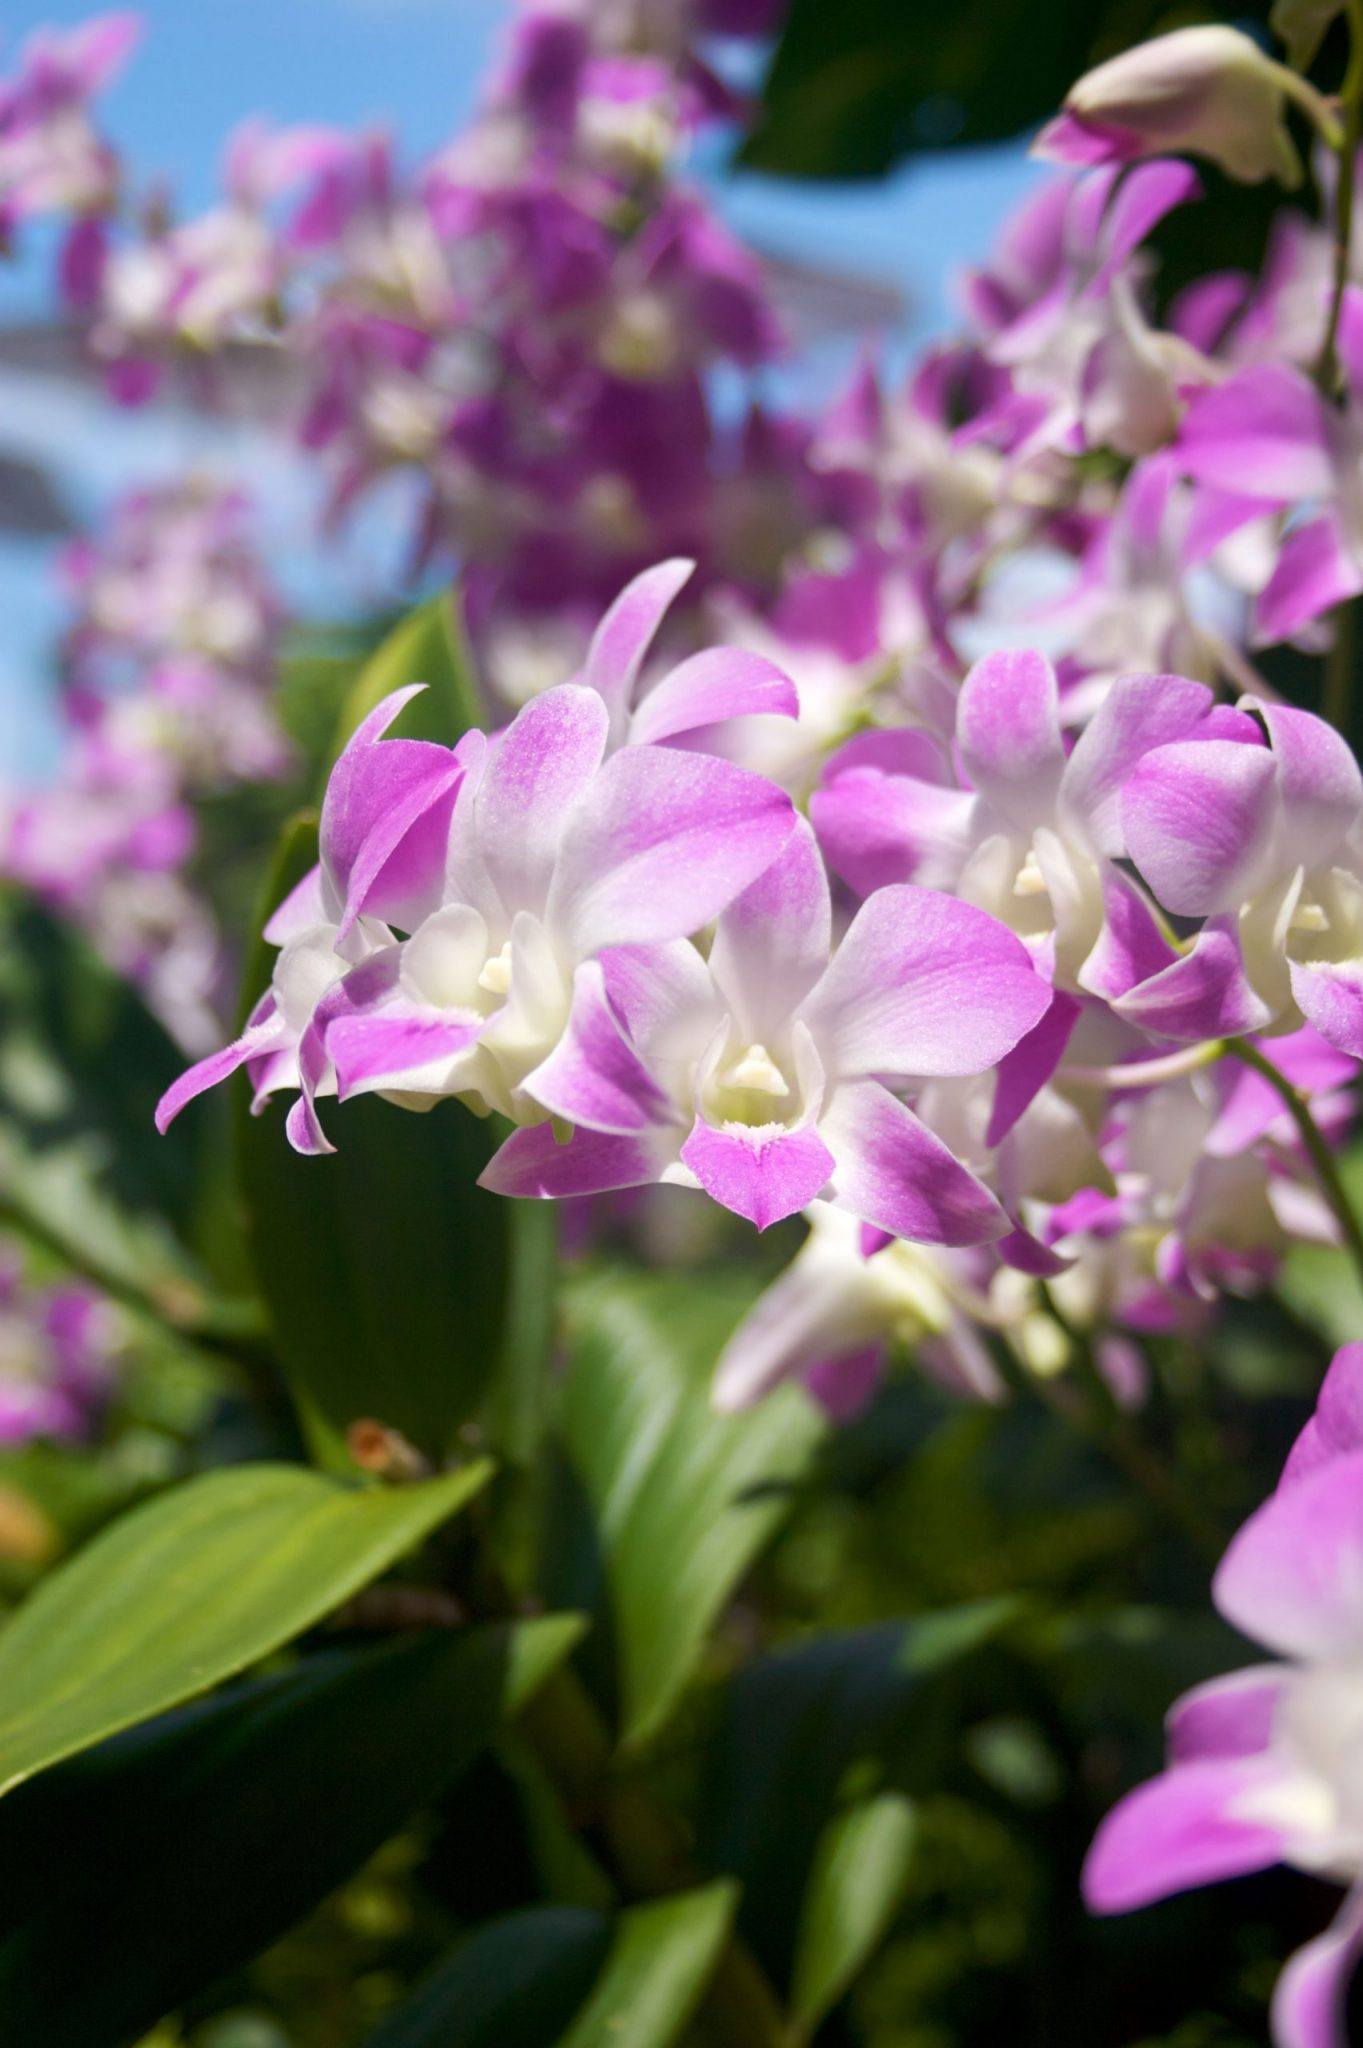 Purple and white orchid outside with blue skies